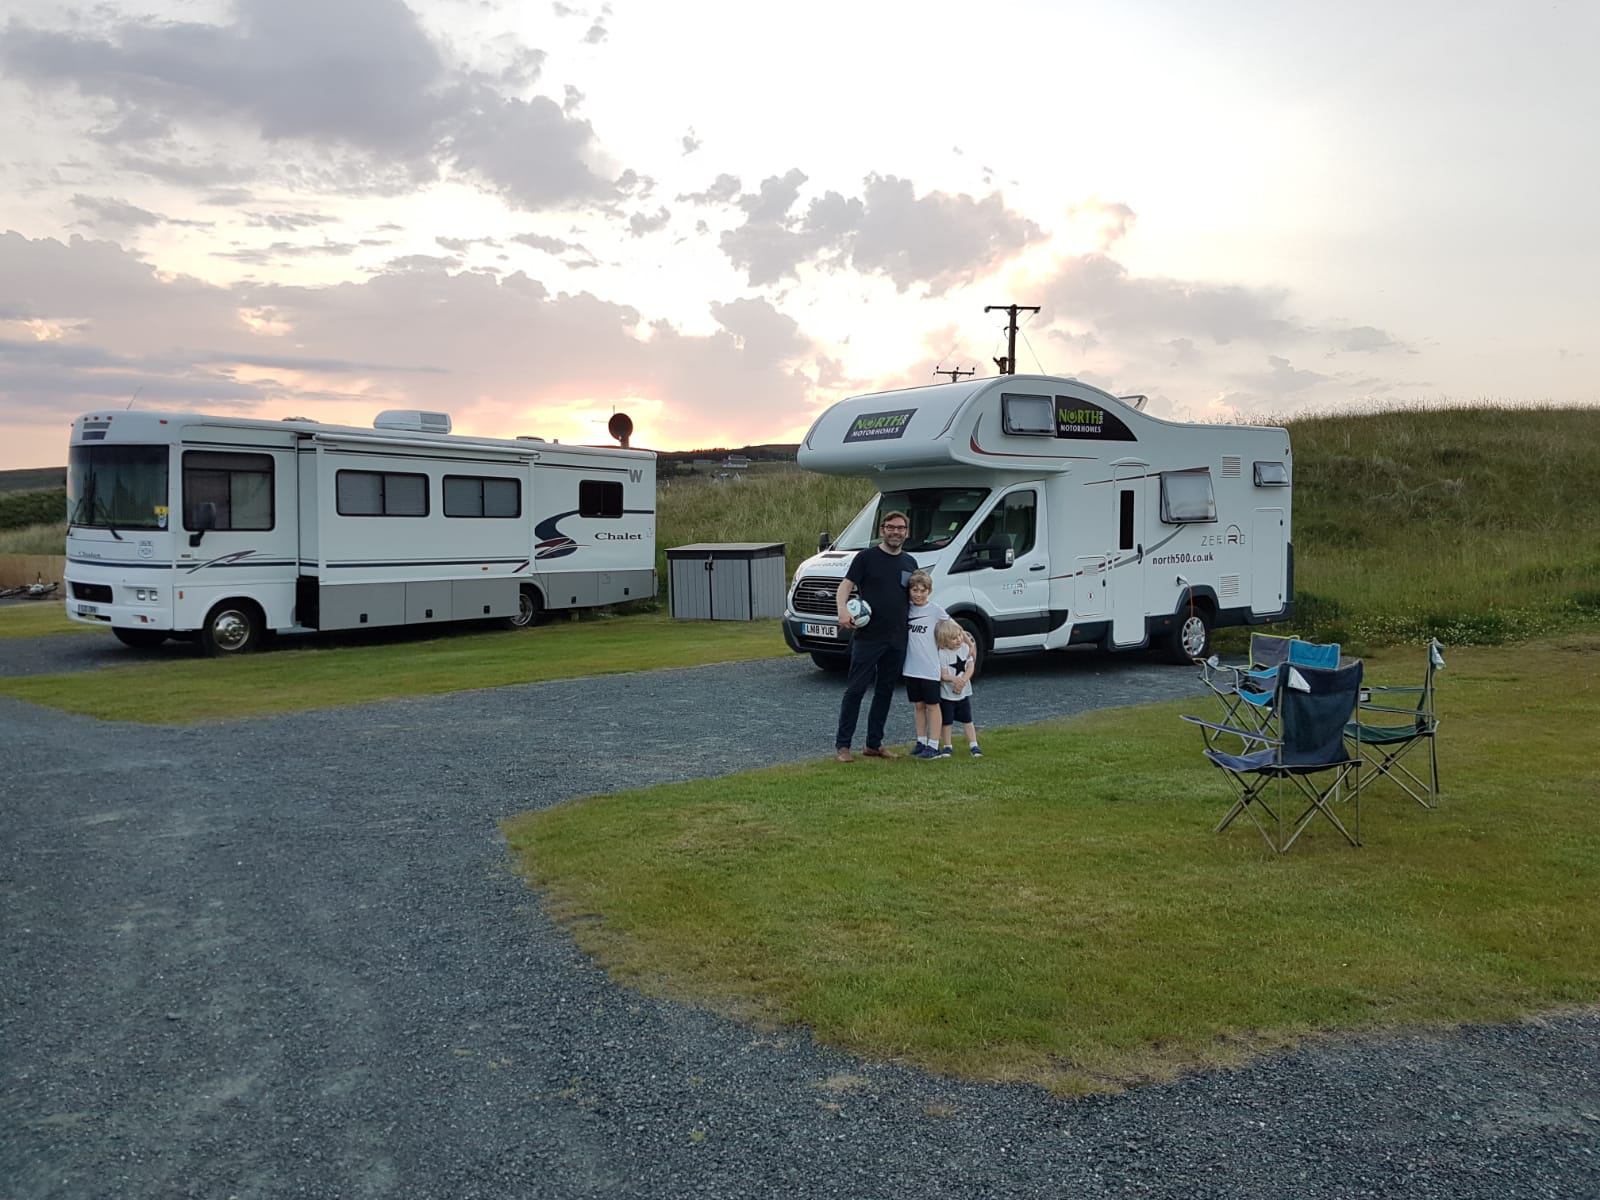 A beginner's guide to seeing Scotland by campervan